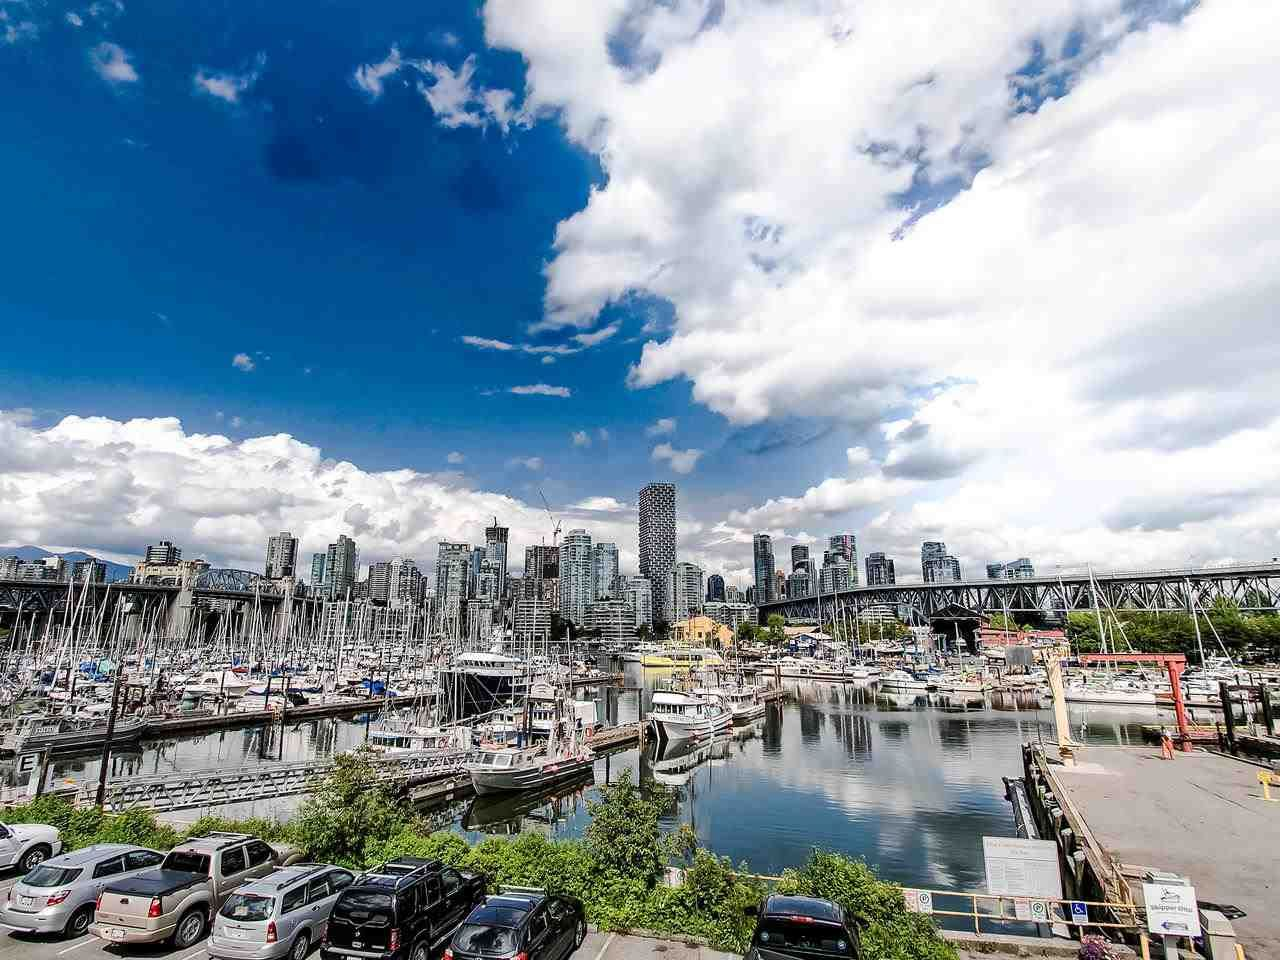 """Main Photo: 402 1510 W 1ST Avenue in Vancouver: False Creek Condo for sale in """"Mariner Point"""" (Vancouver West)  : MLS®# R2462648"""